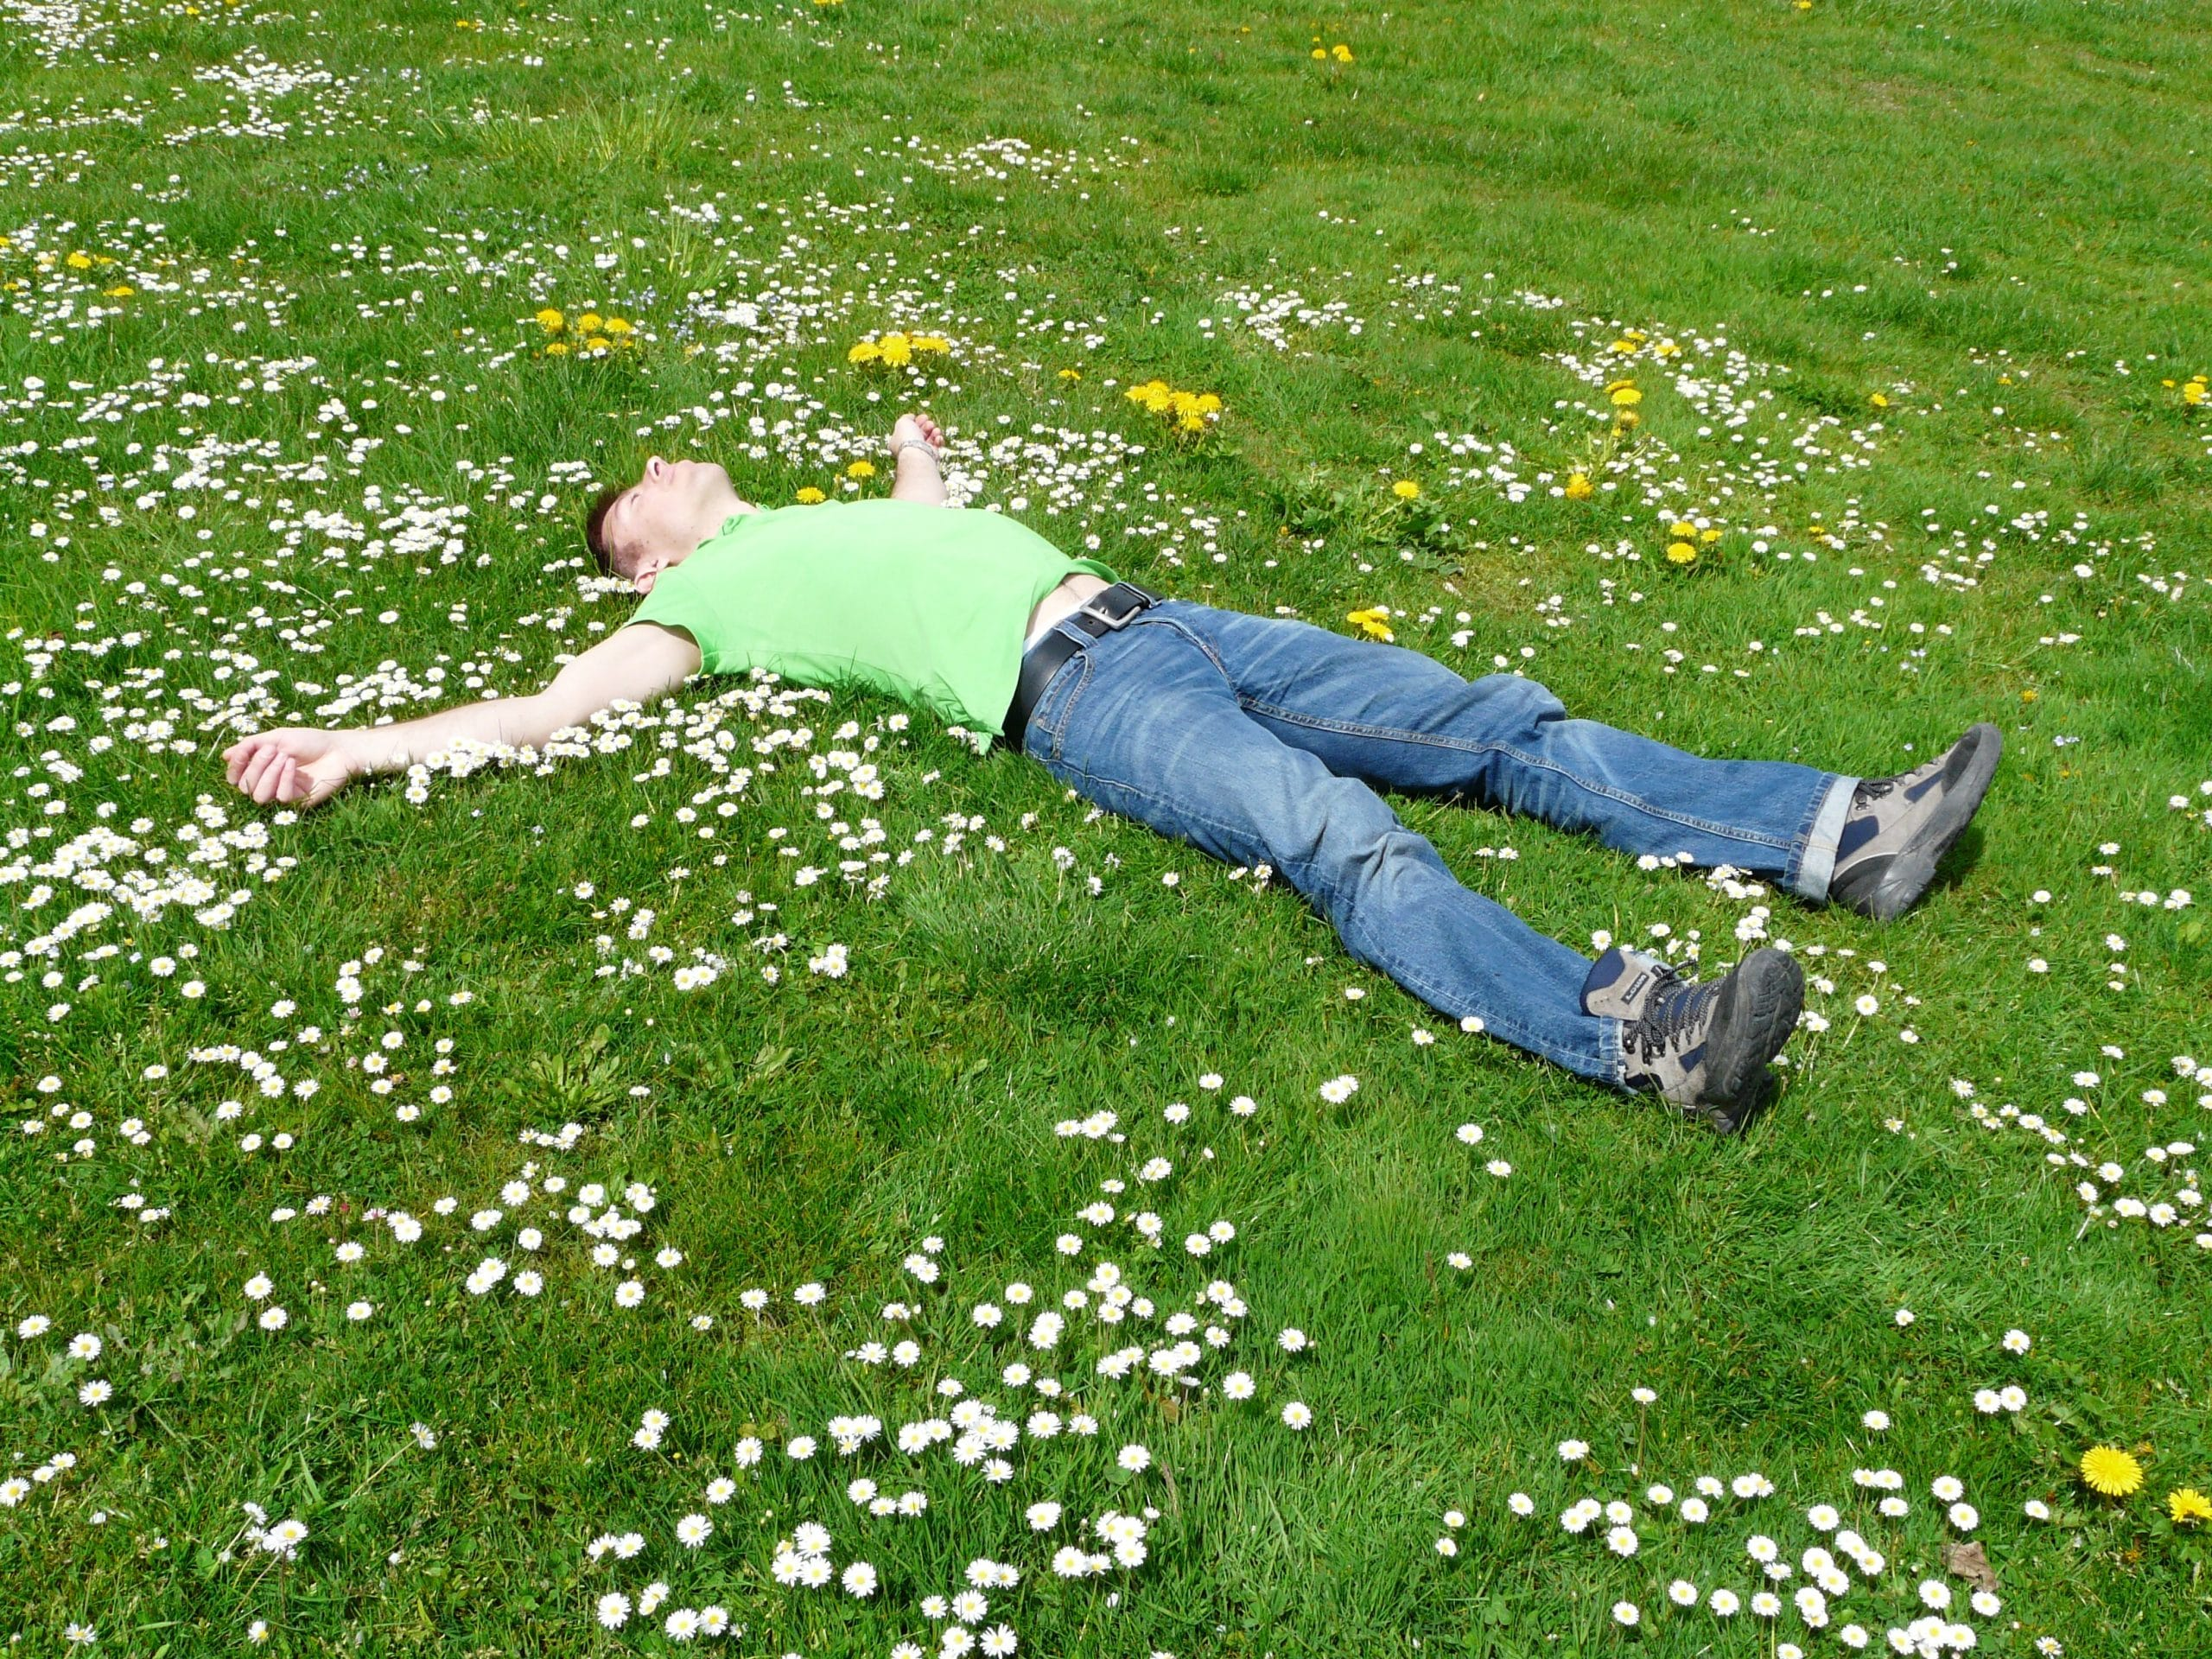 High angle view of a person lying down on grass